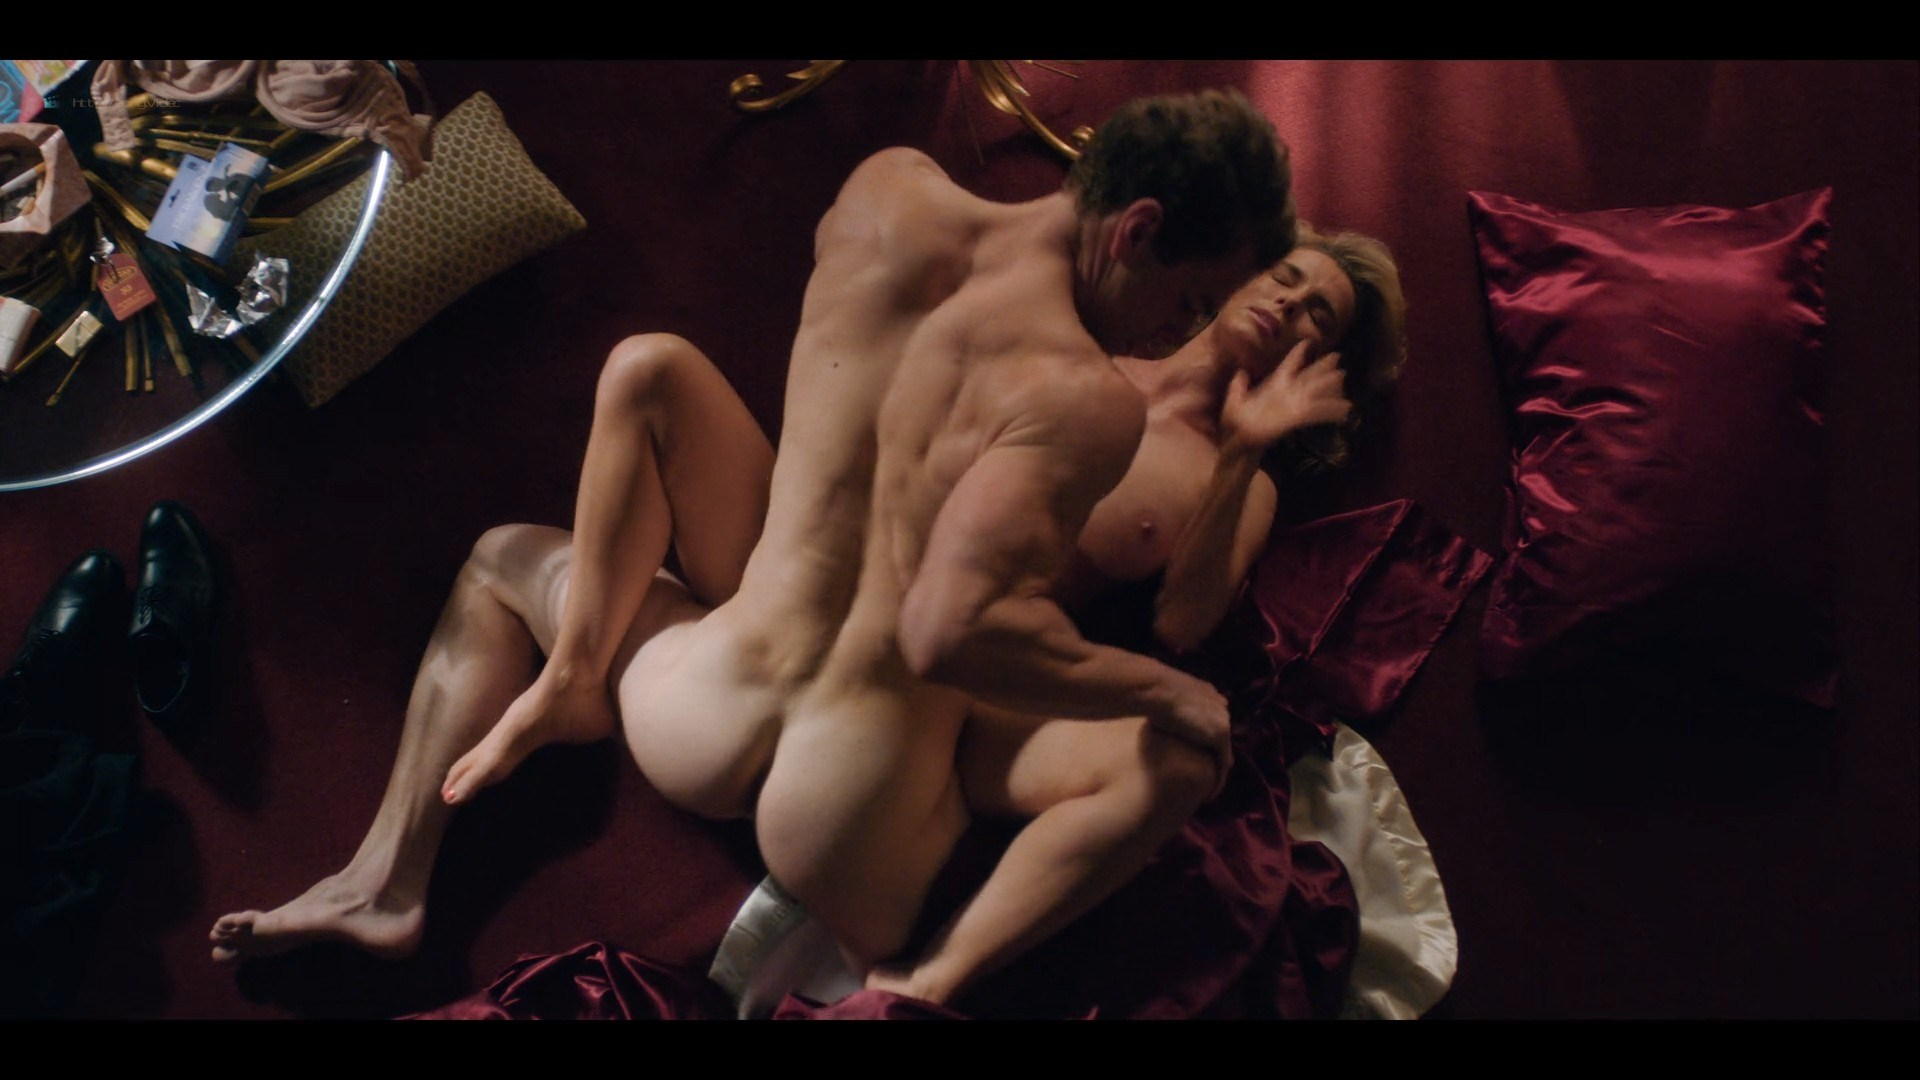 0710213425772_04_Betty-Gilpin-nude-sex-Kate-Nash-sex-others-hot-Glow-2019-S3-HD-1080p-0015.jpg